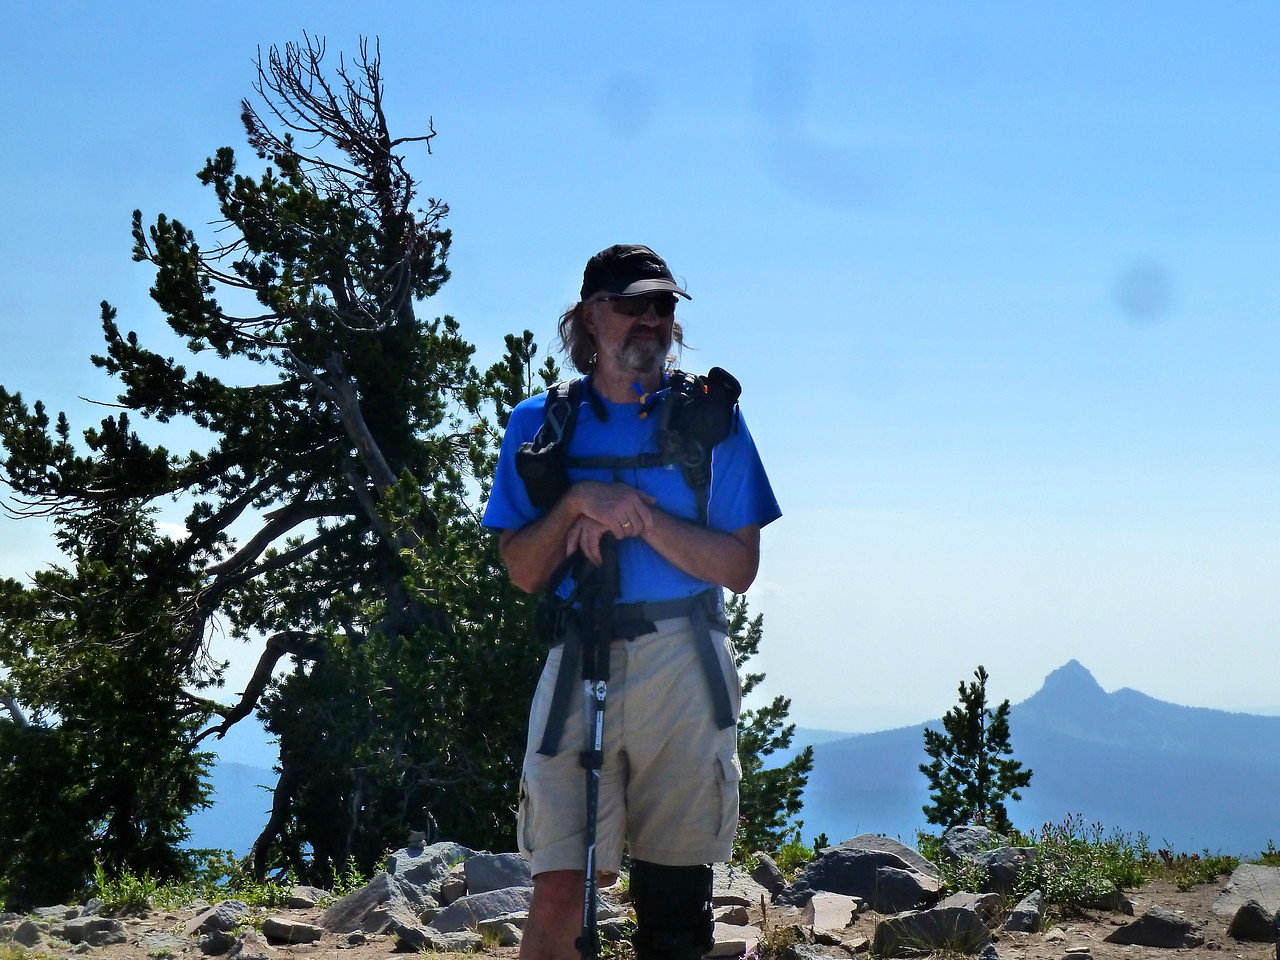 Hiking up the Garfield Peak Trail in Crater National Park!